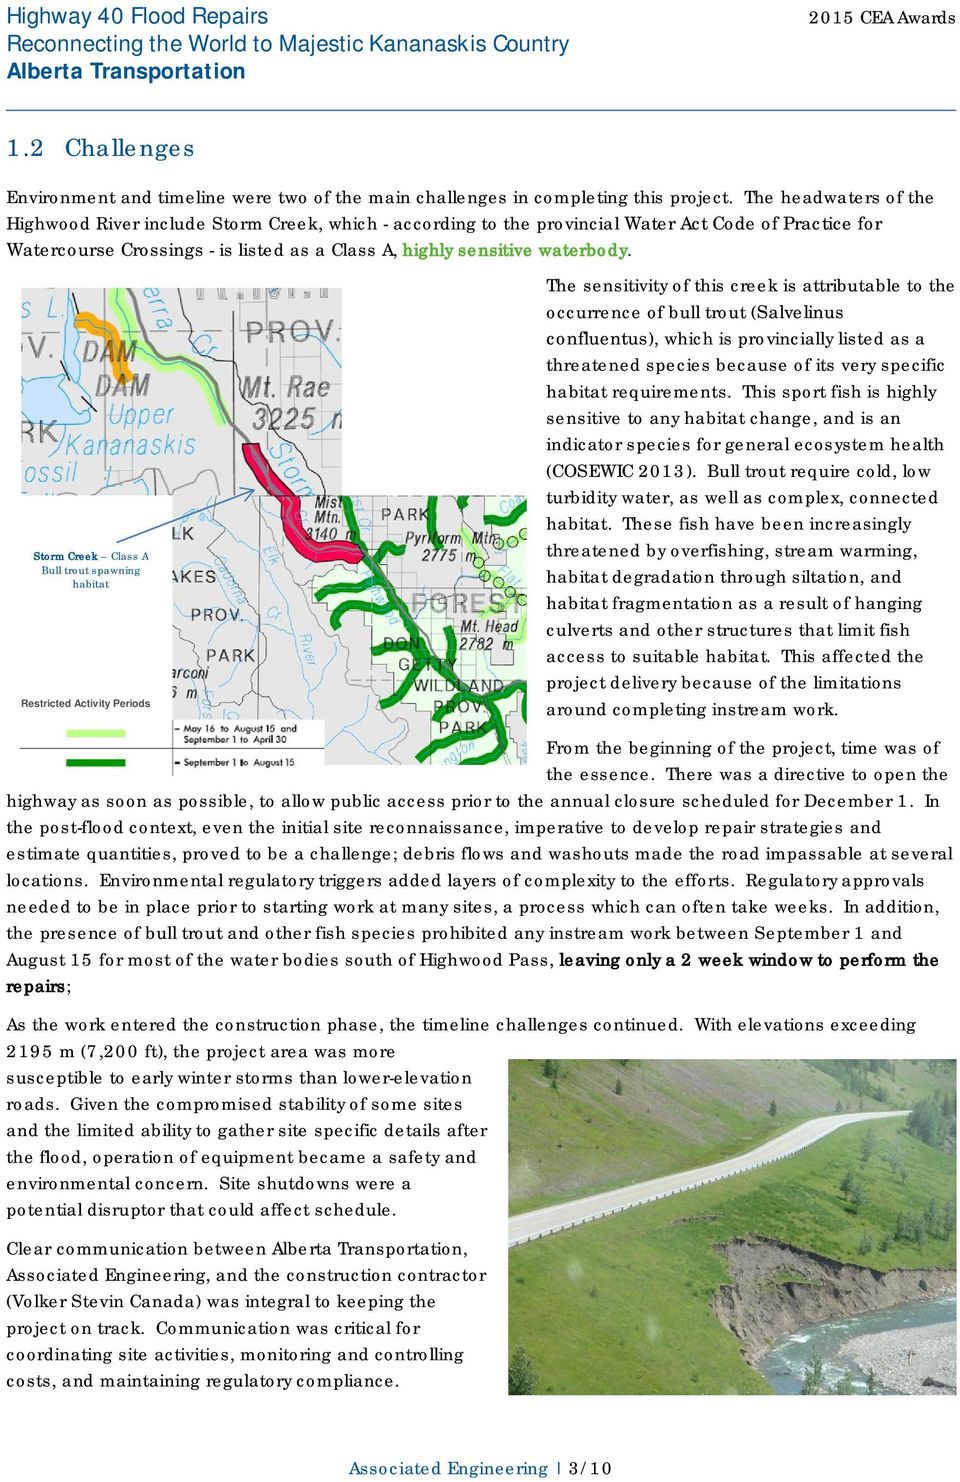 Storm Creek Class A Bull trout spawning habitat Restricted Activity Periods The sensitivity of this creek is attributable to the occurrence of bull trout (Salvelinus confluentus), which is